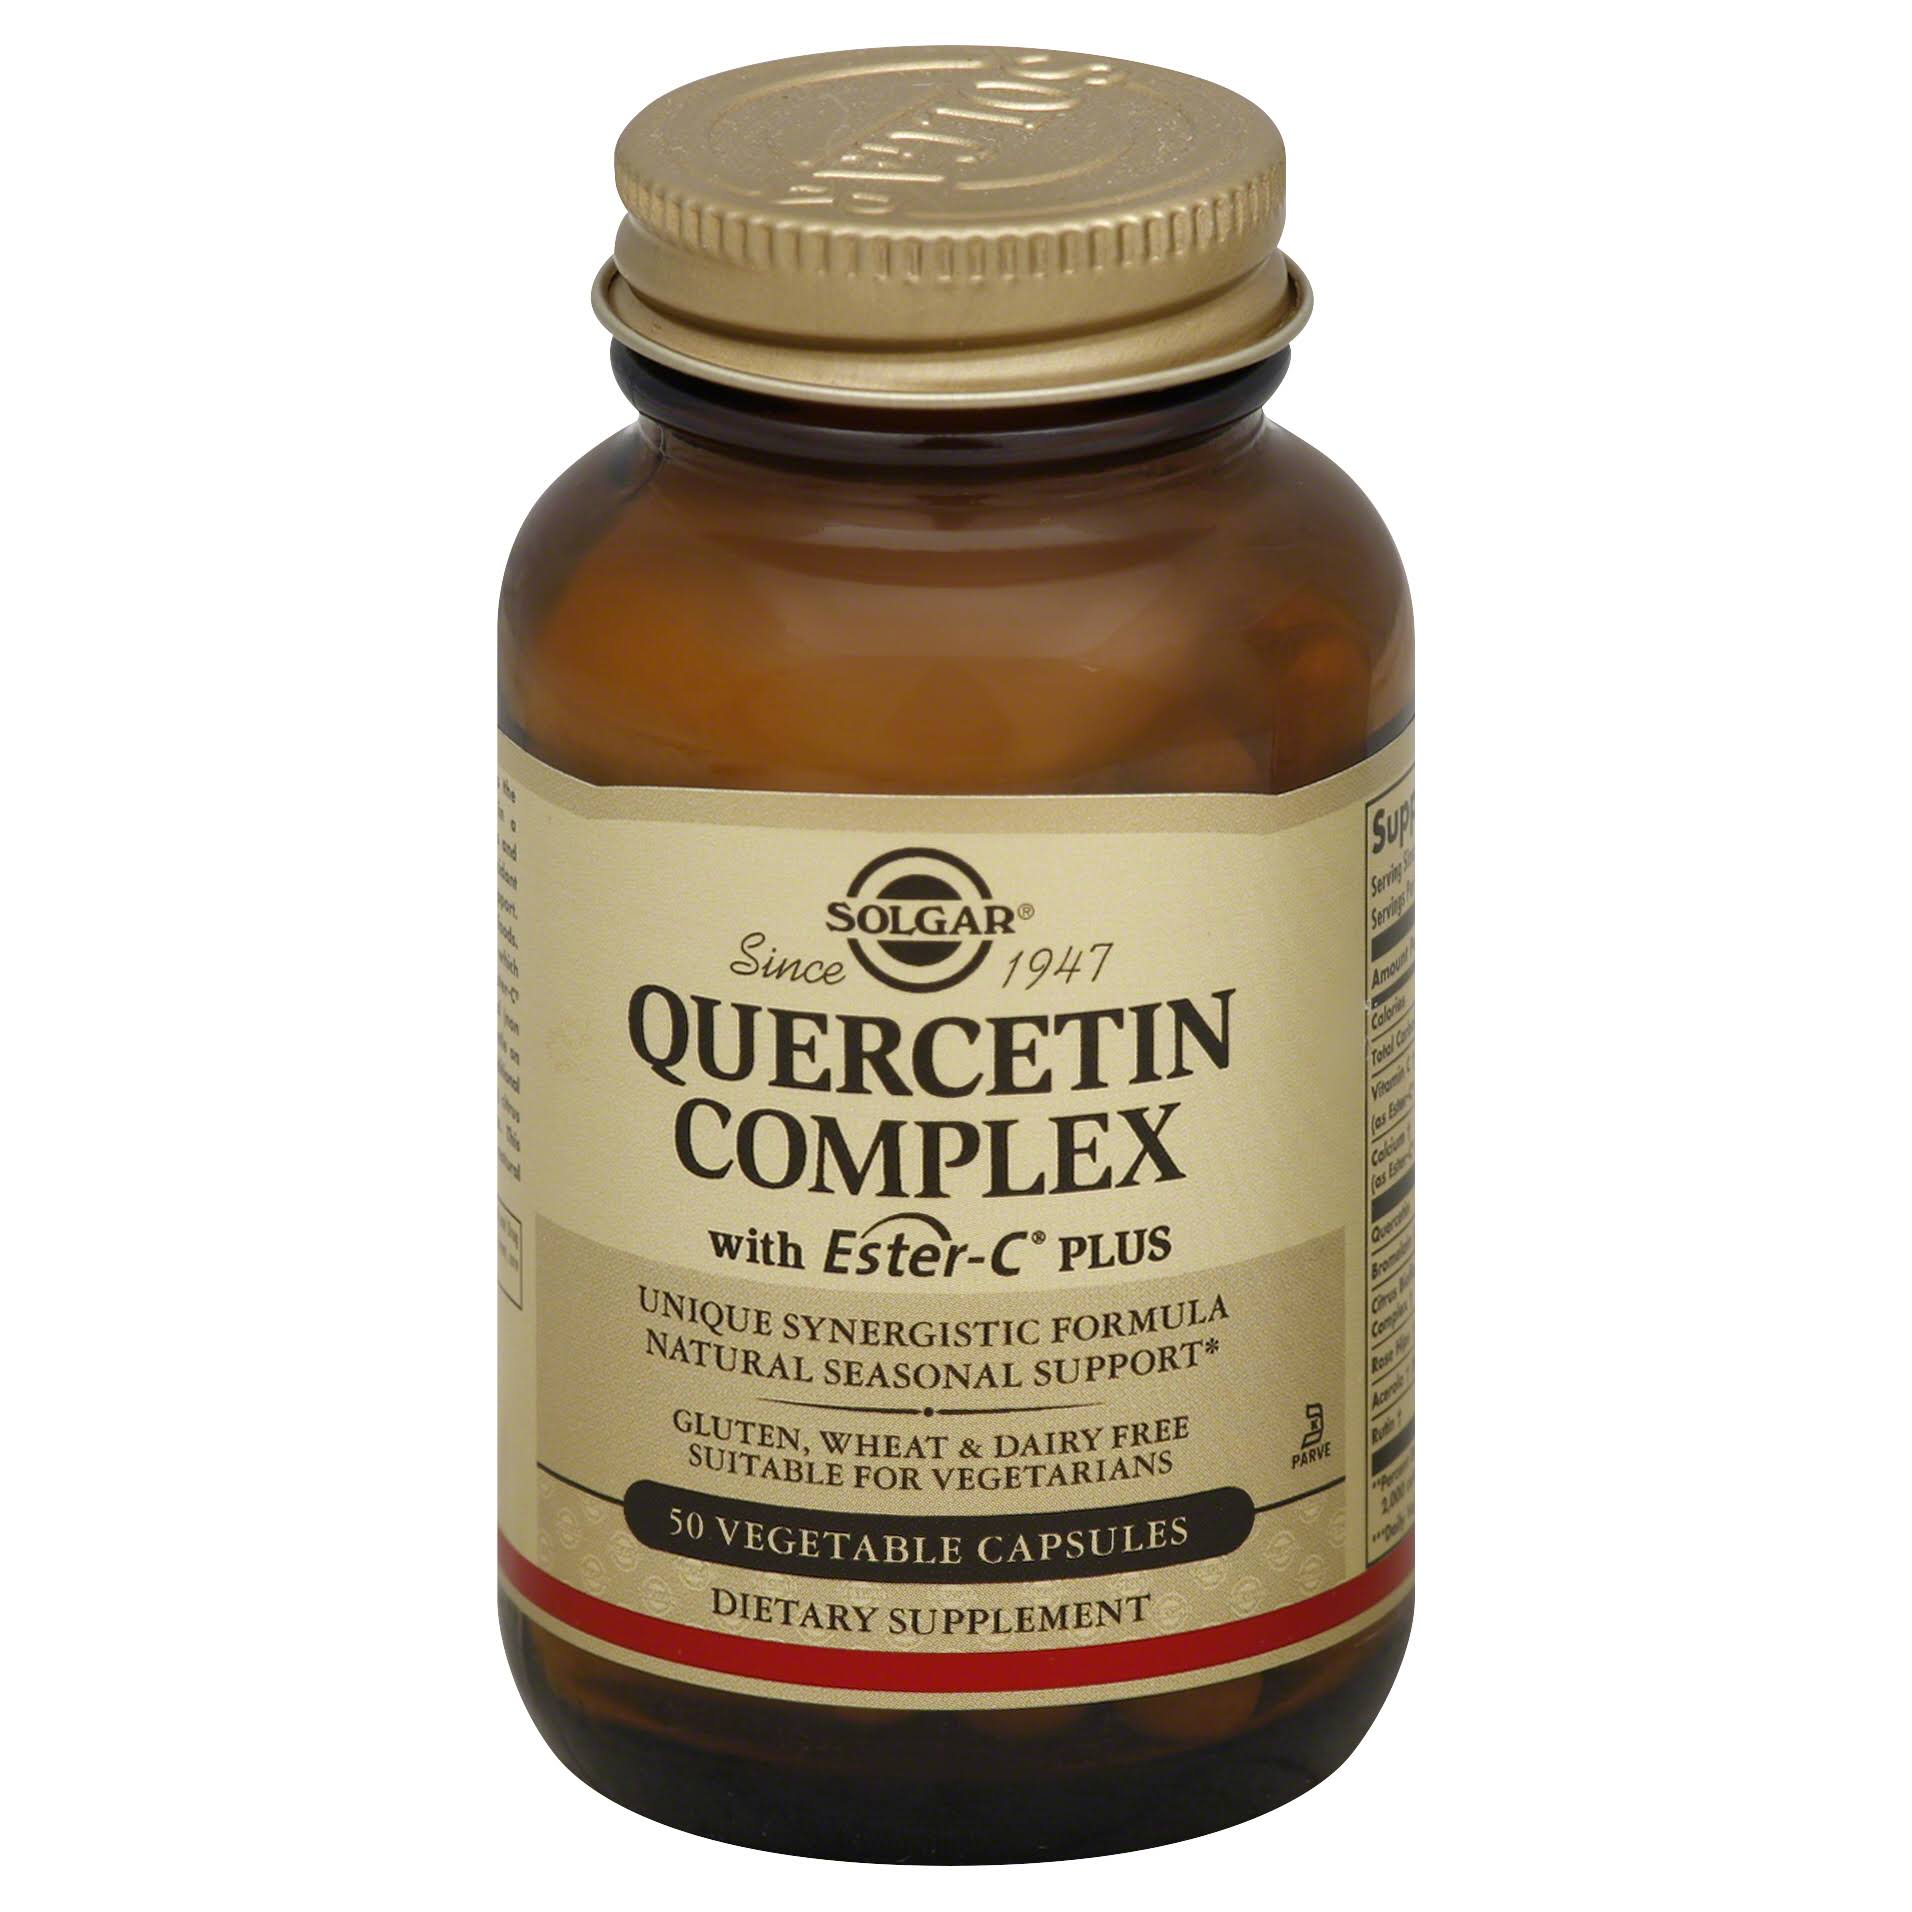 Solgar Quercetin Complex Vegetable - 50 capsules